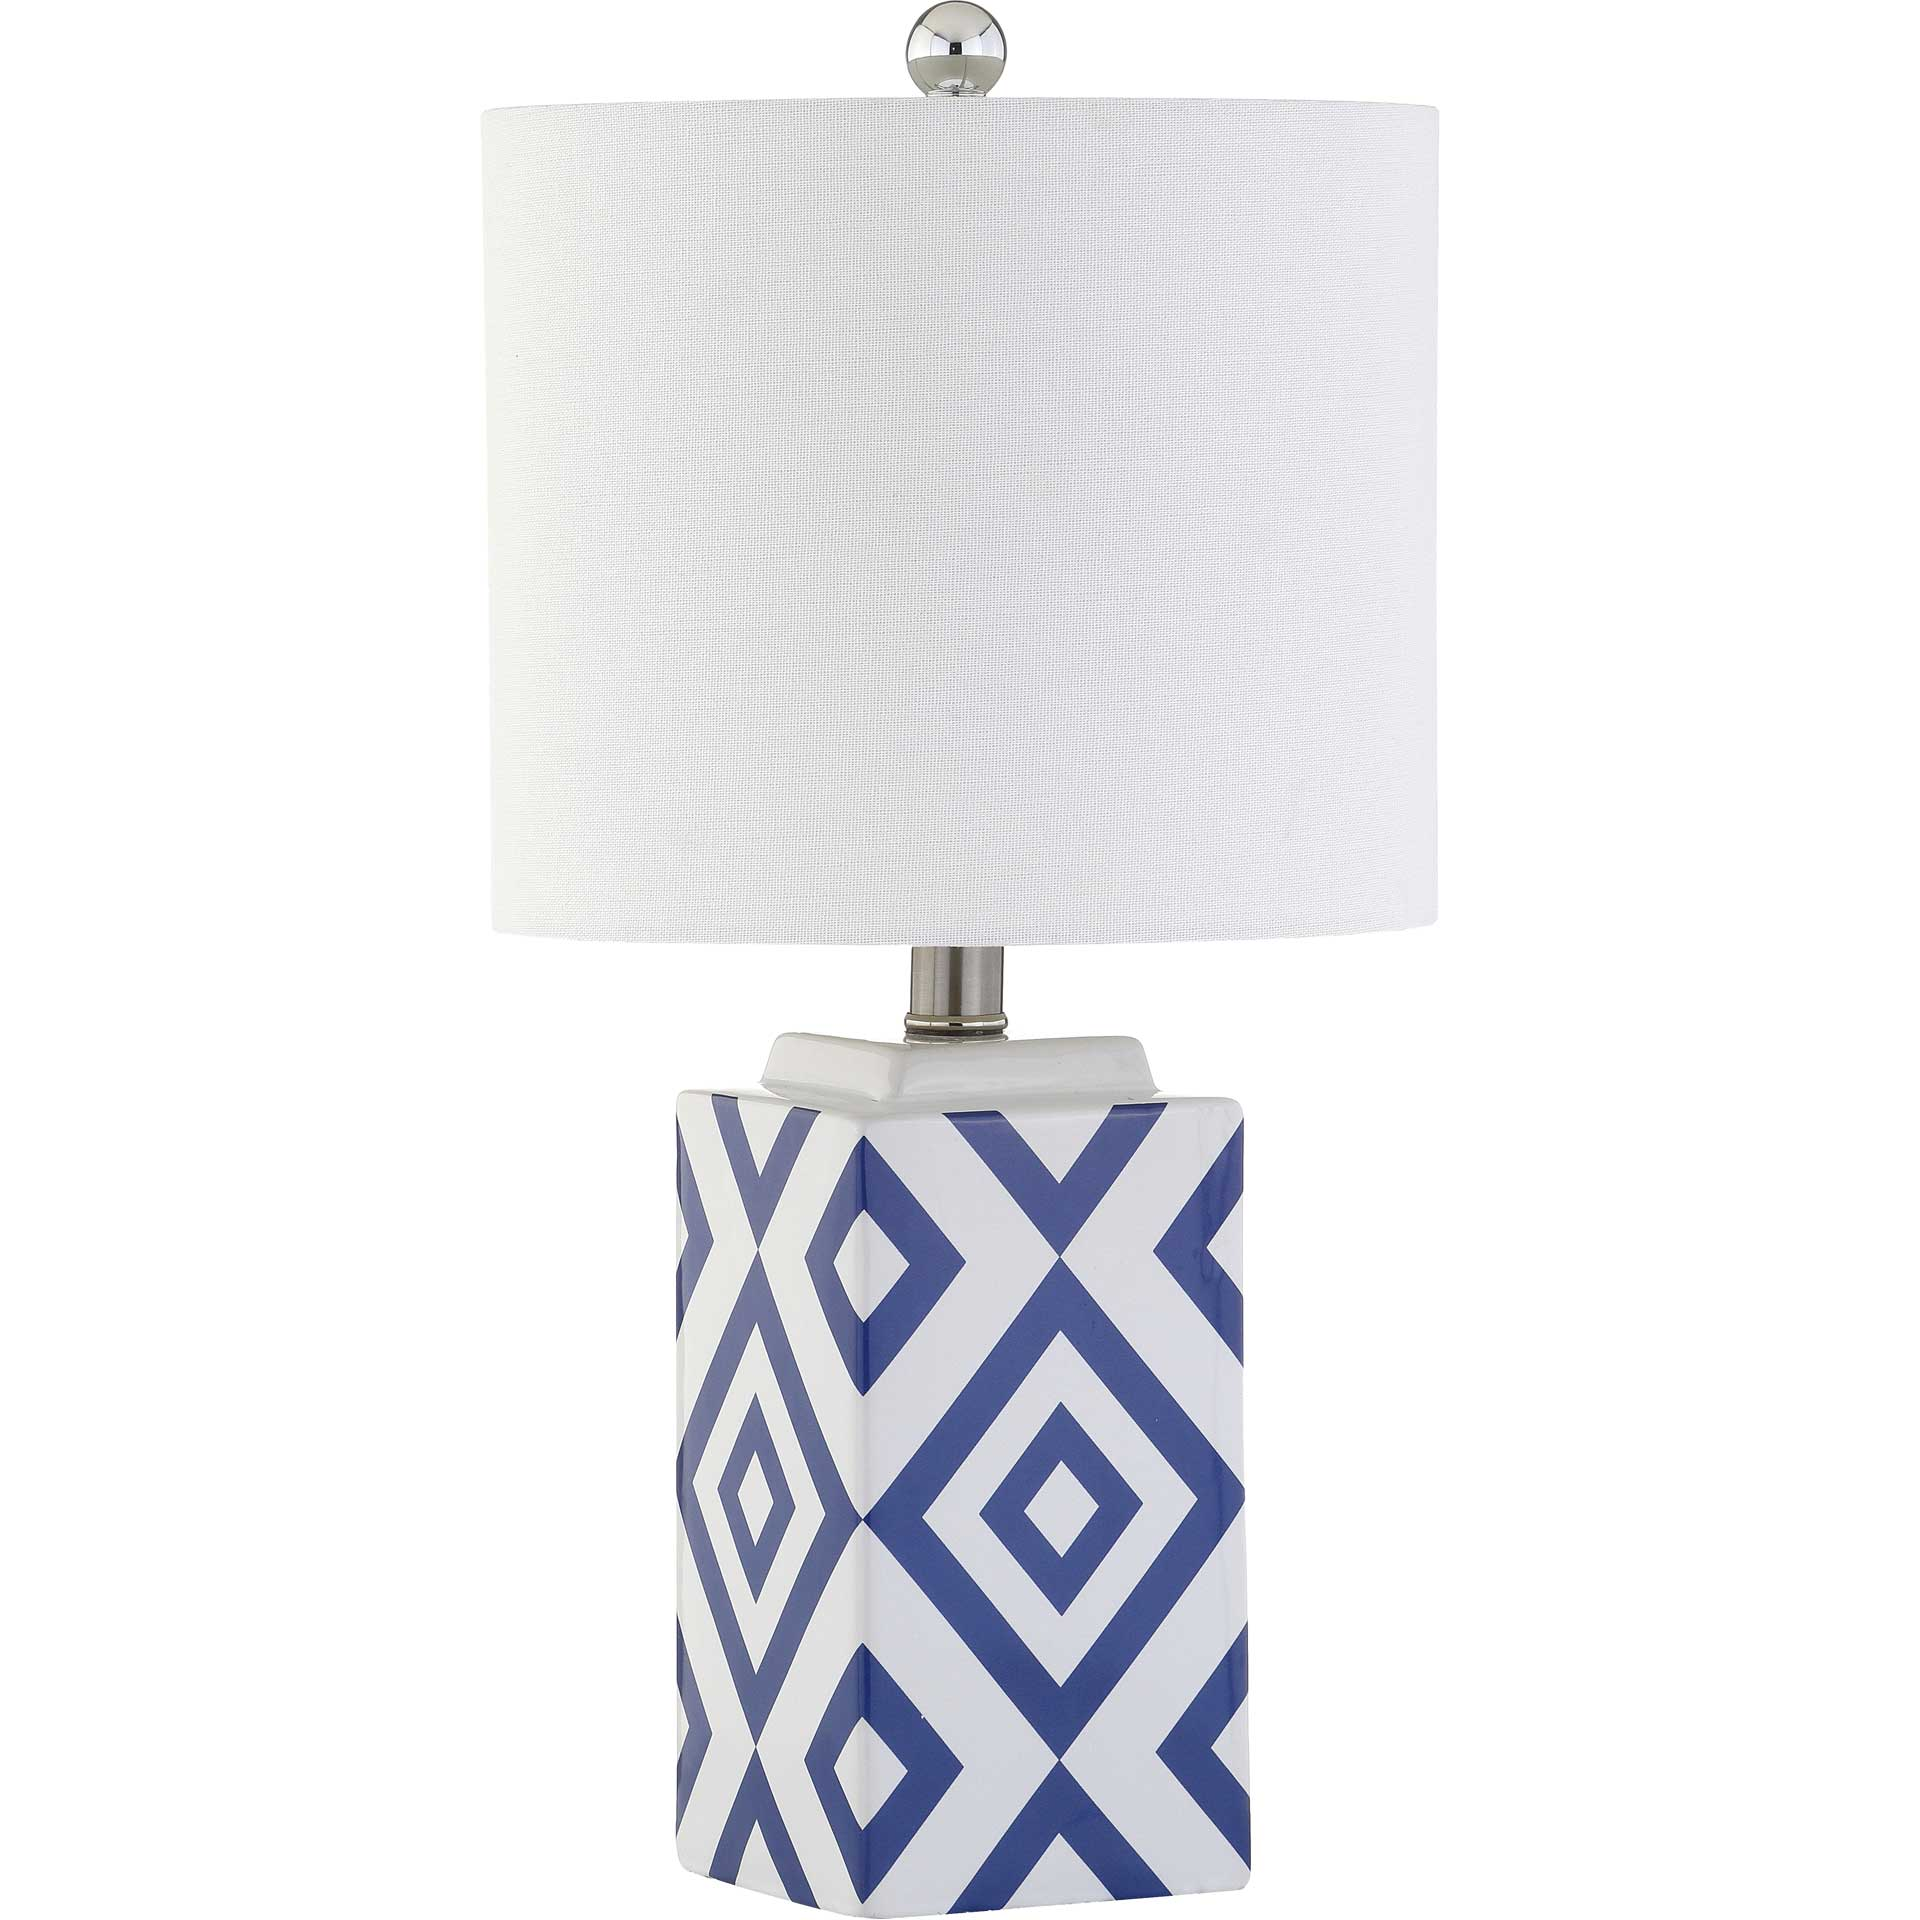 Lucian Table Lamp White/Blue